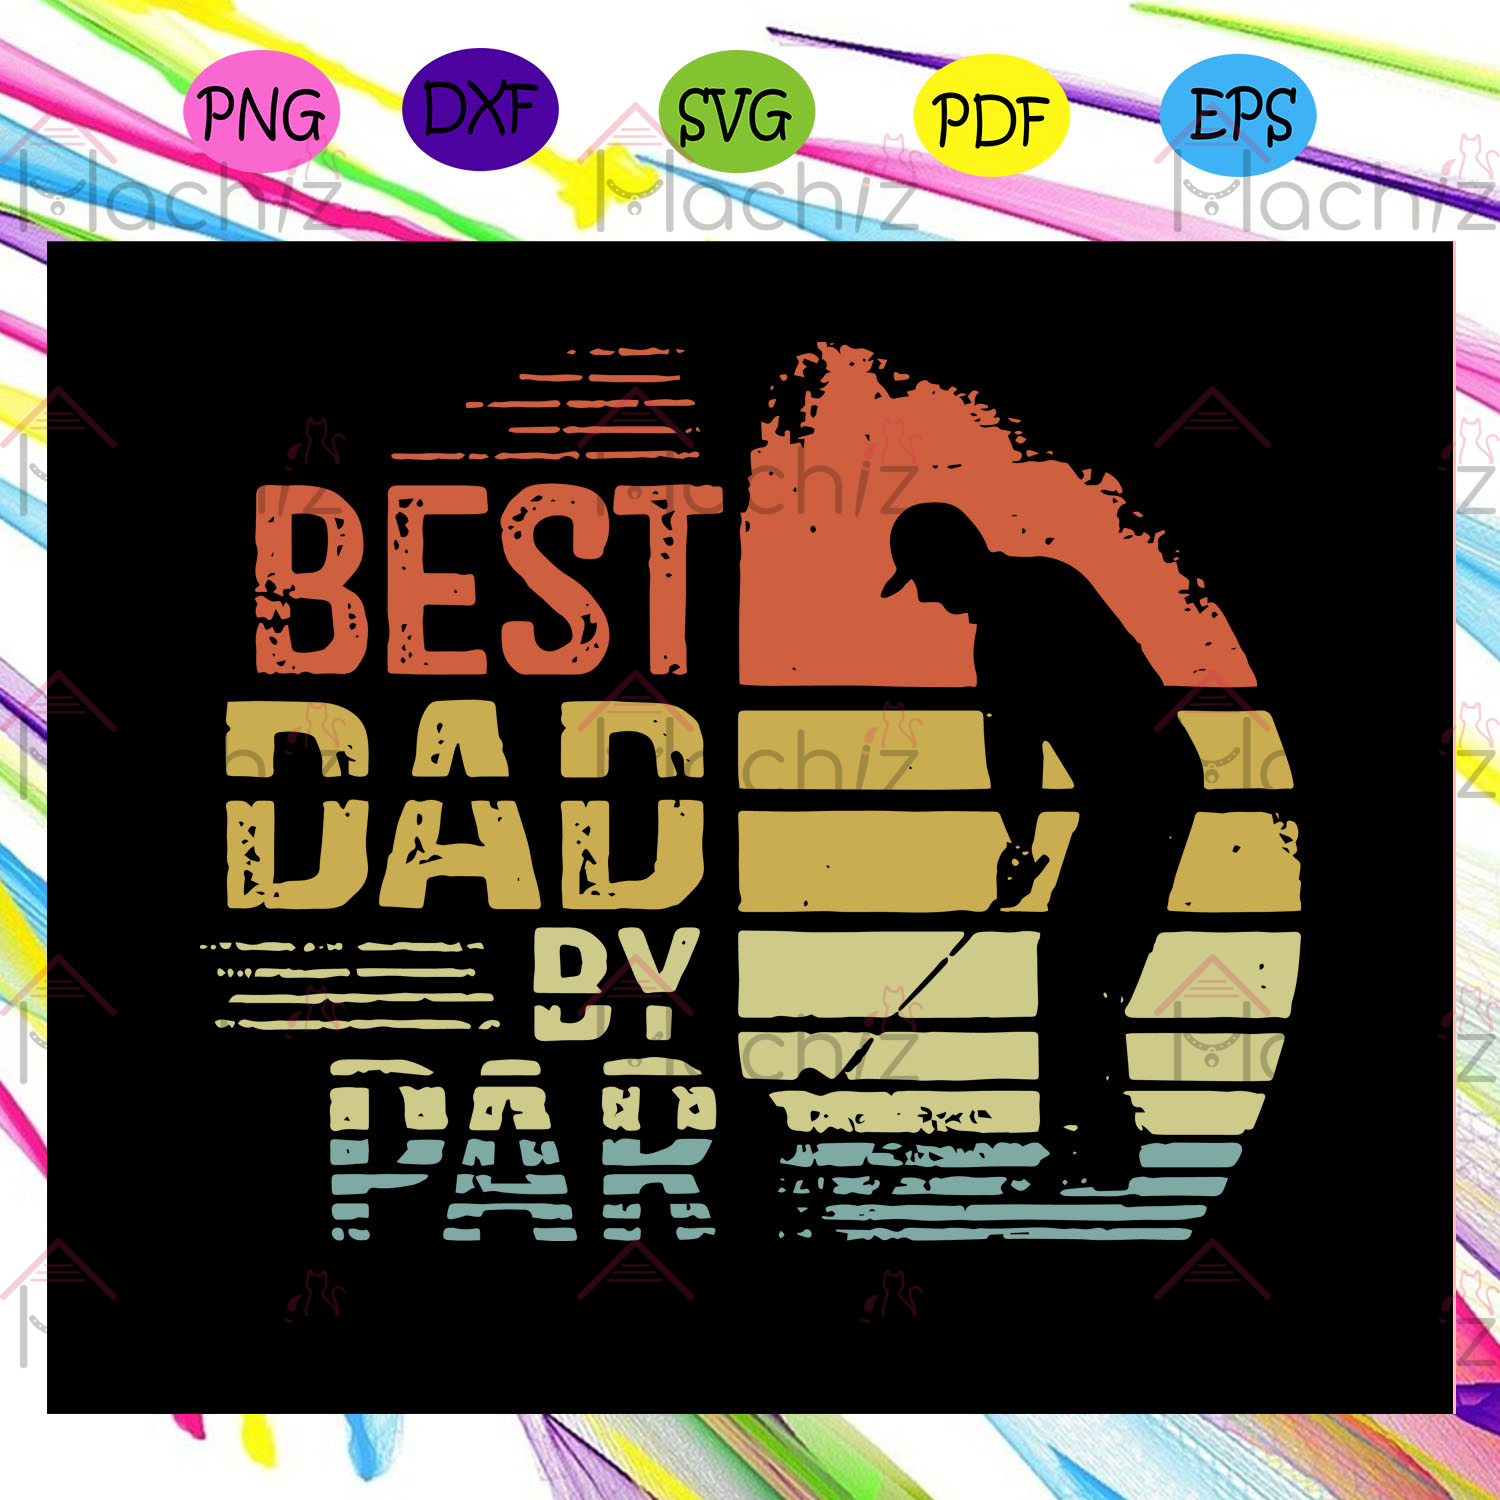 Best dad by par shirt gift for father svg, fathers days svg, fathers day flag svg, fathers day gift, dad life svg, gift for dad svg, golf lover svg, gift for papa svg, fathers day gift svg, Files For Silhouette, Files For Cricut, SVG, DXF, EPS